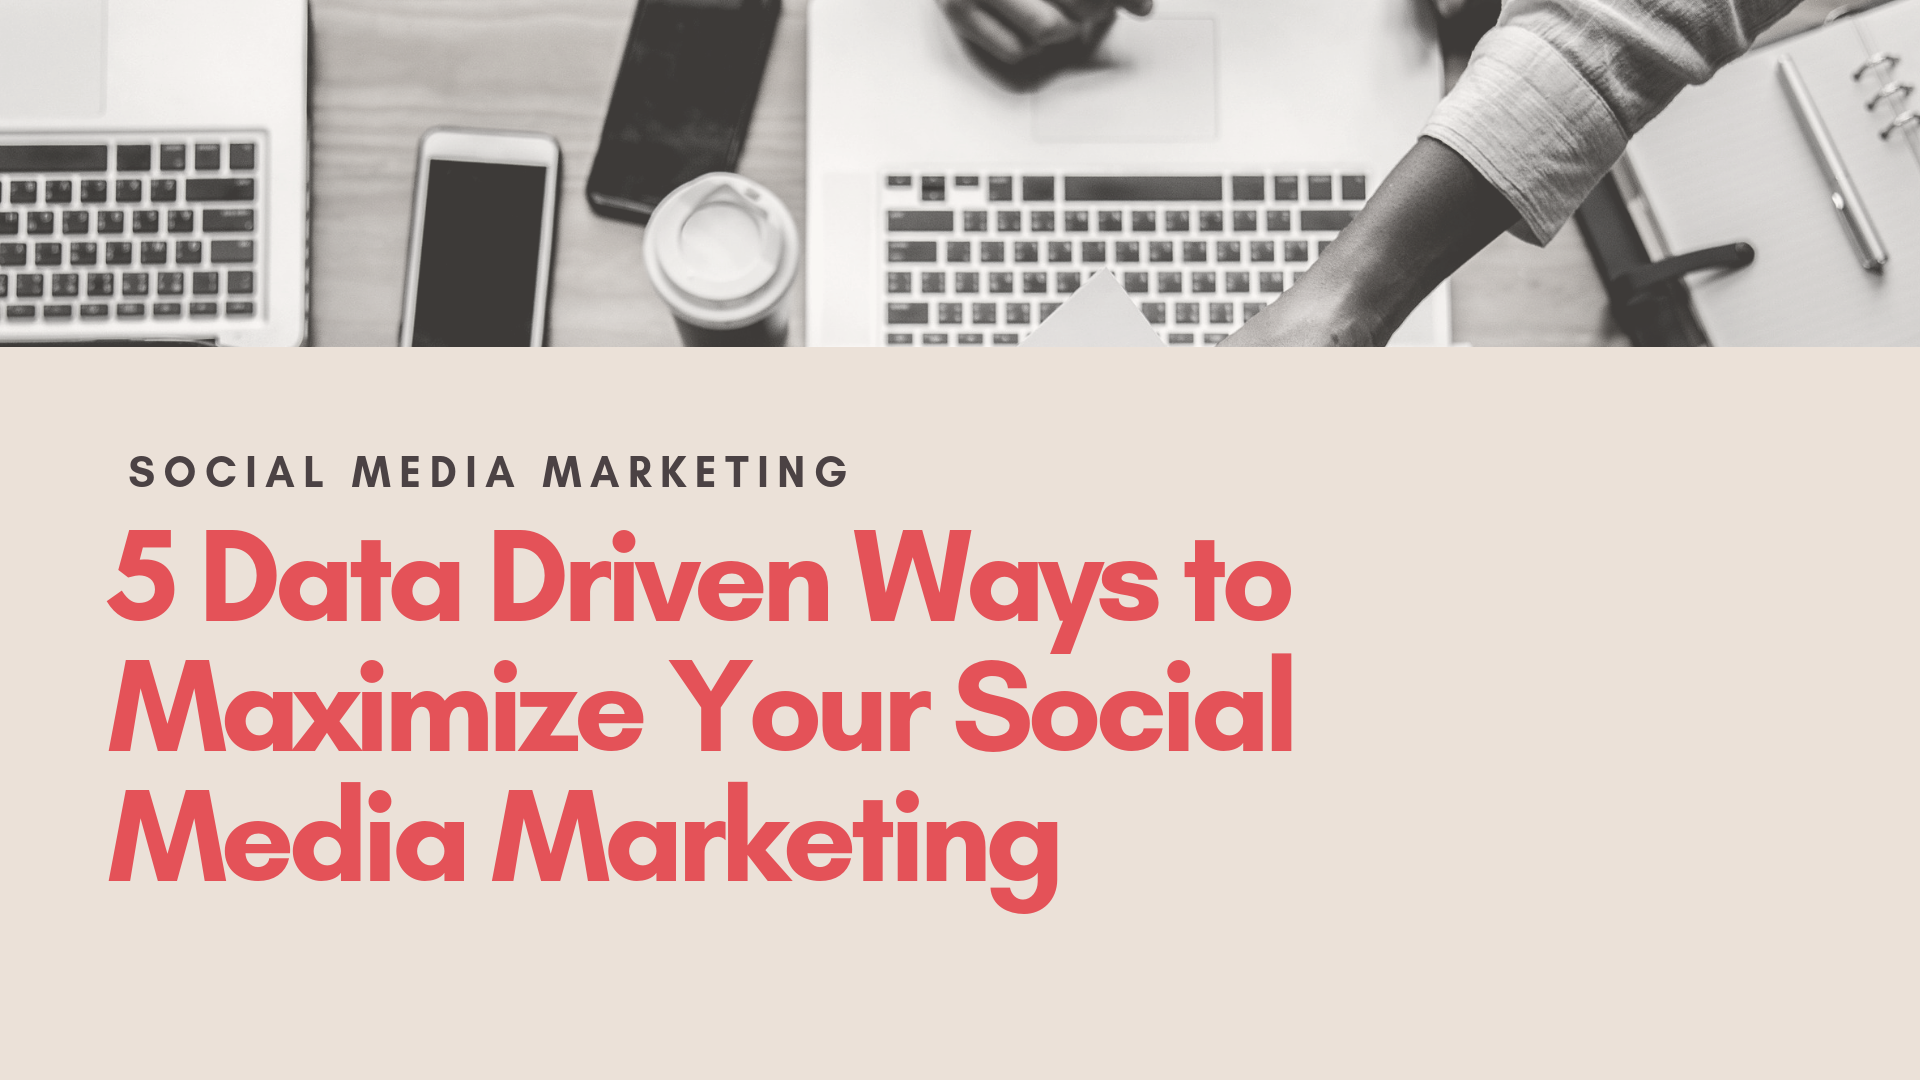 5 Data Drive Ways to Maximize Social Media Marketing